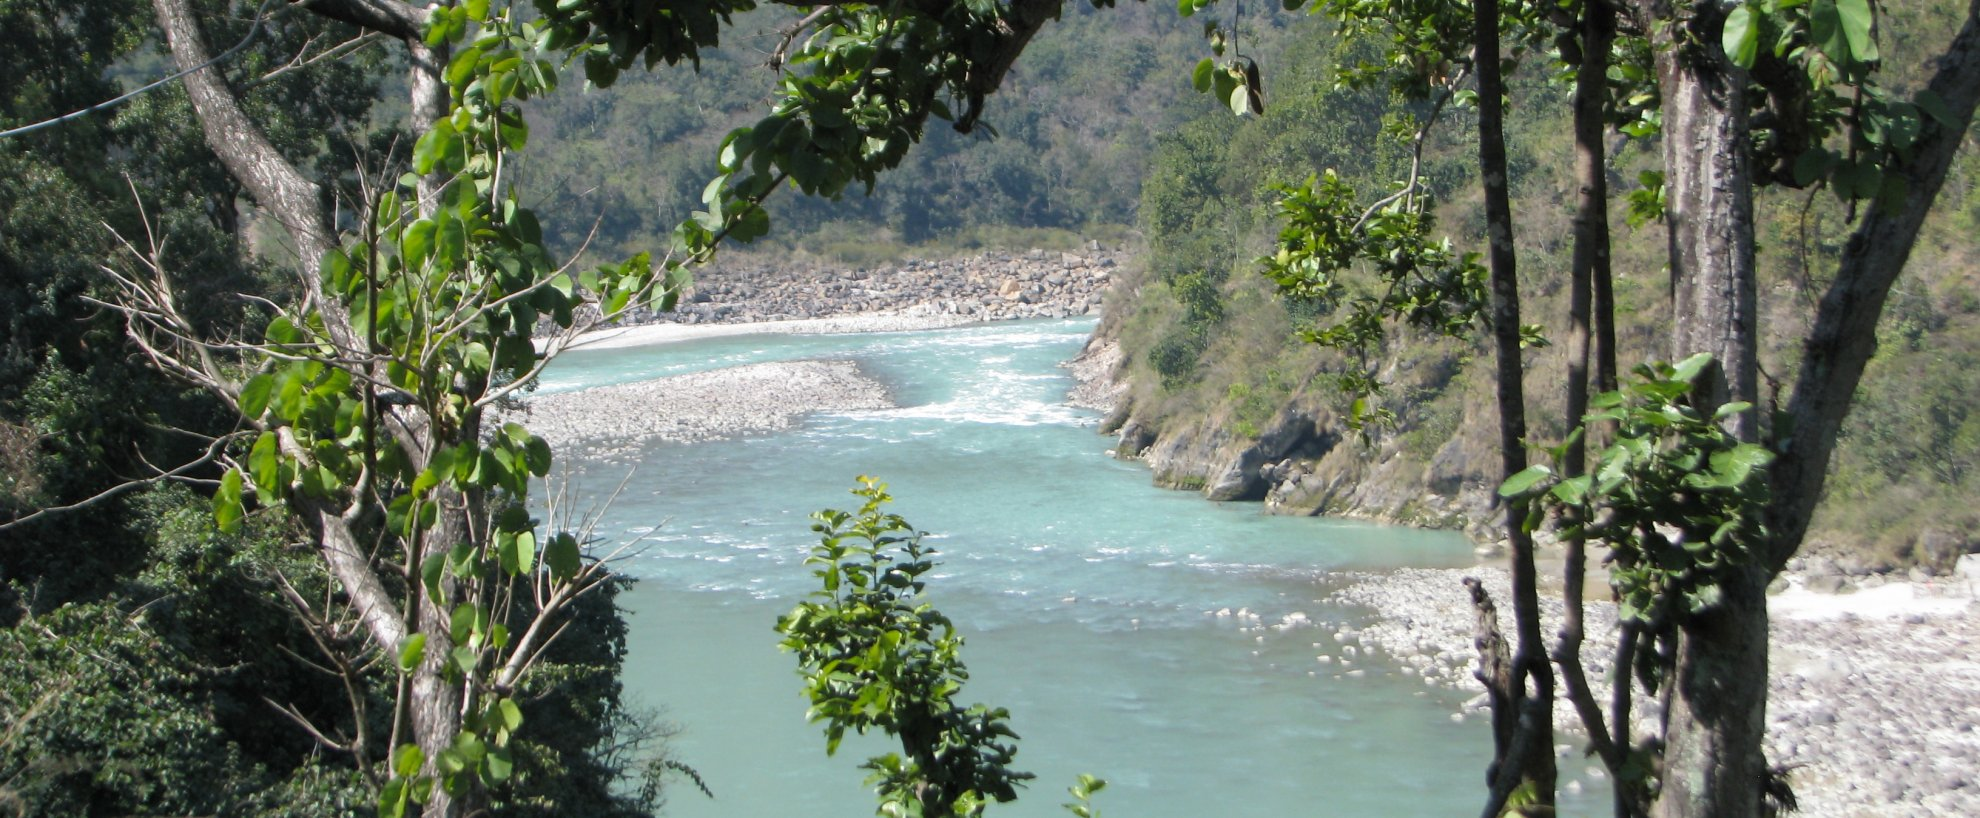 Indien Rundreise Nordindien Anandlok Resort  Rishikesh Fluss